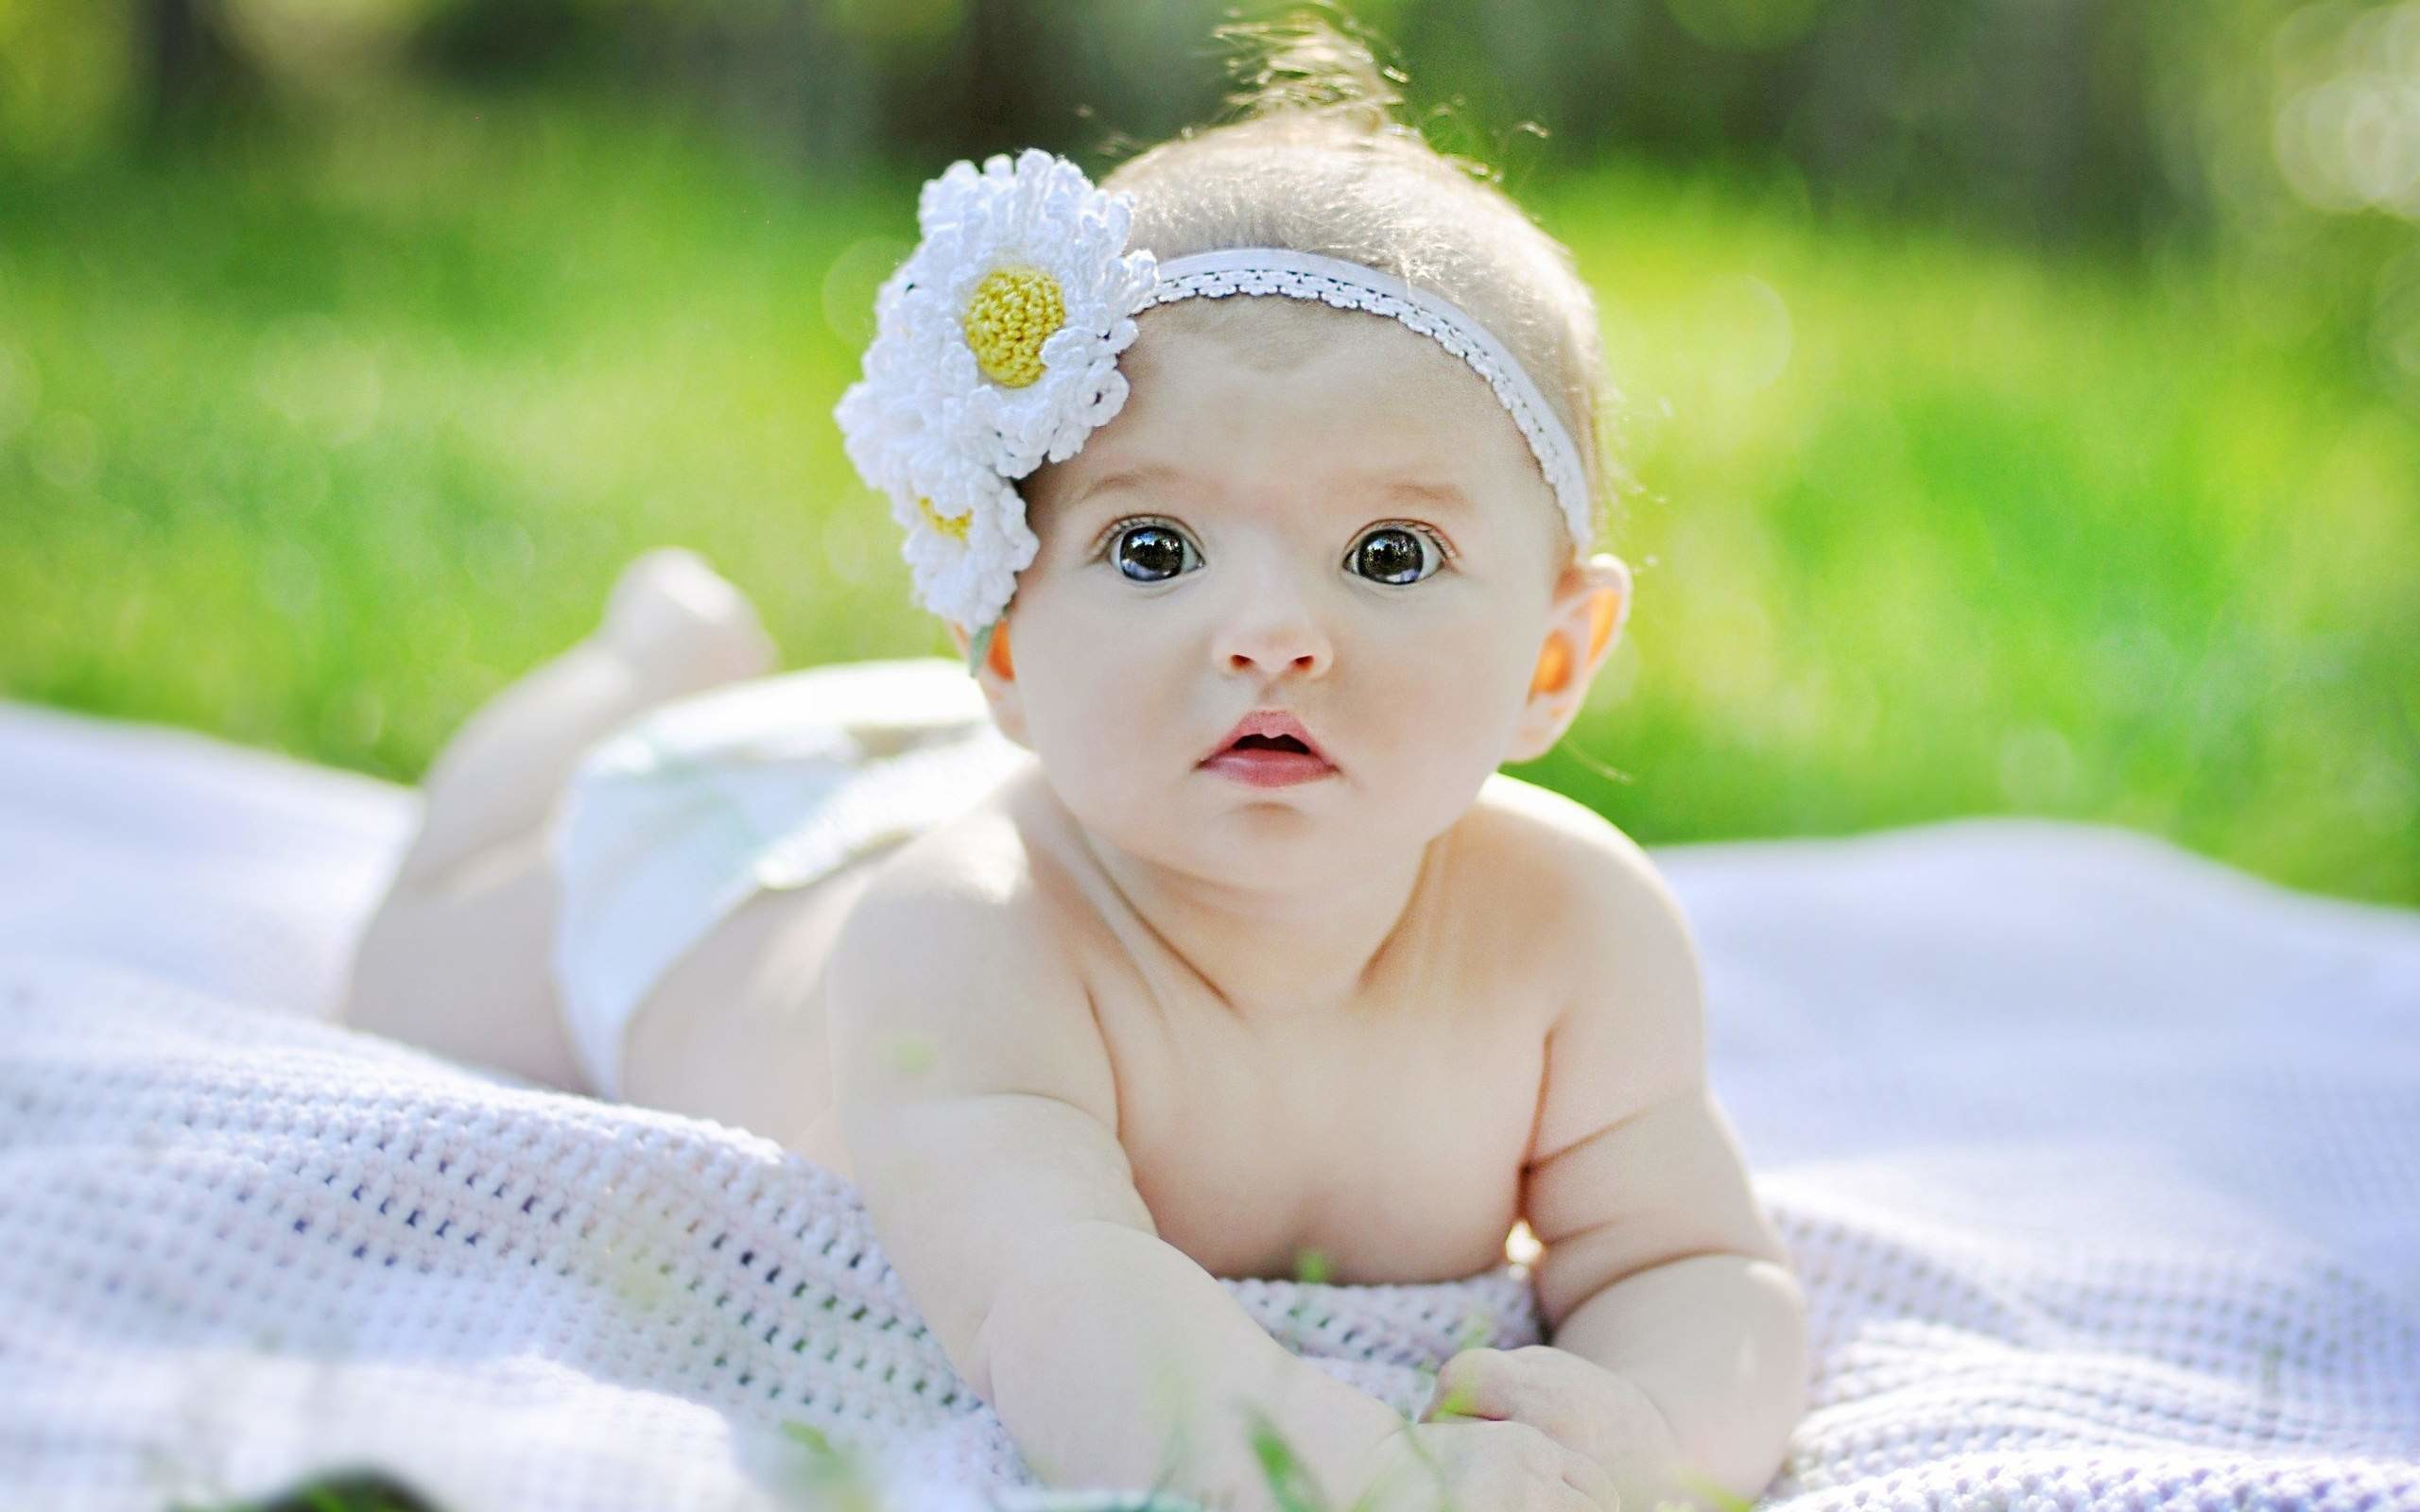 2560x1600 Cute Baby Girl Wallpaper HD For Desktop, Laptop & Mobile